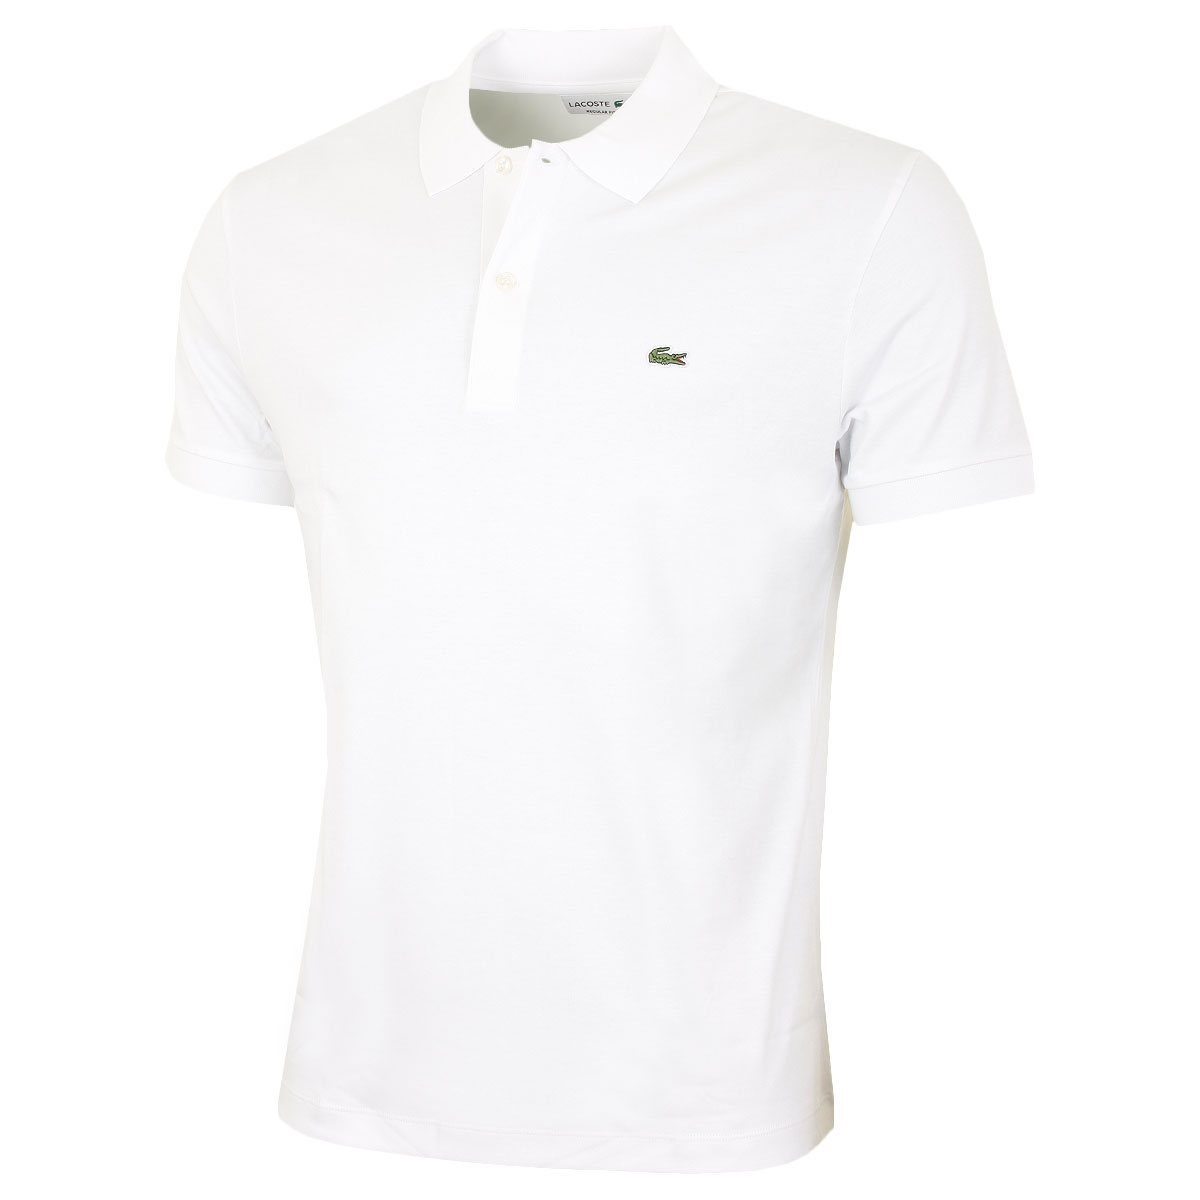 Lacoste 2017 mens dh2050 short sleeved ribbed collar for Lacoste polo shirts ebay